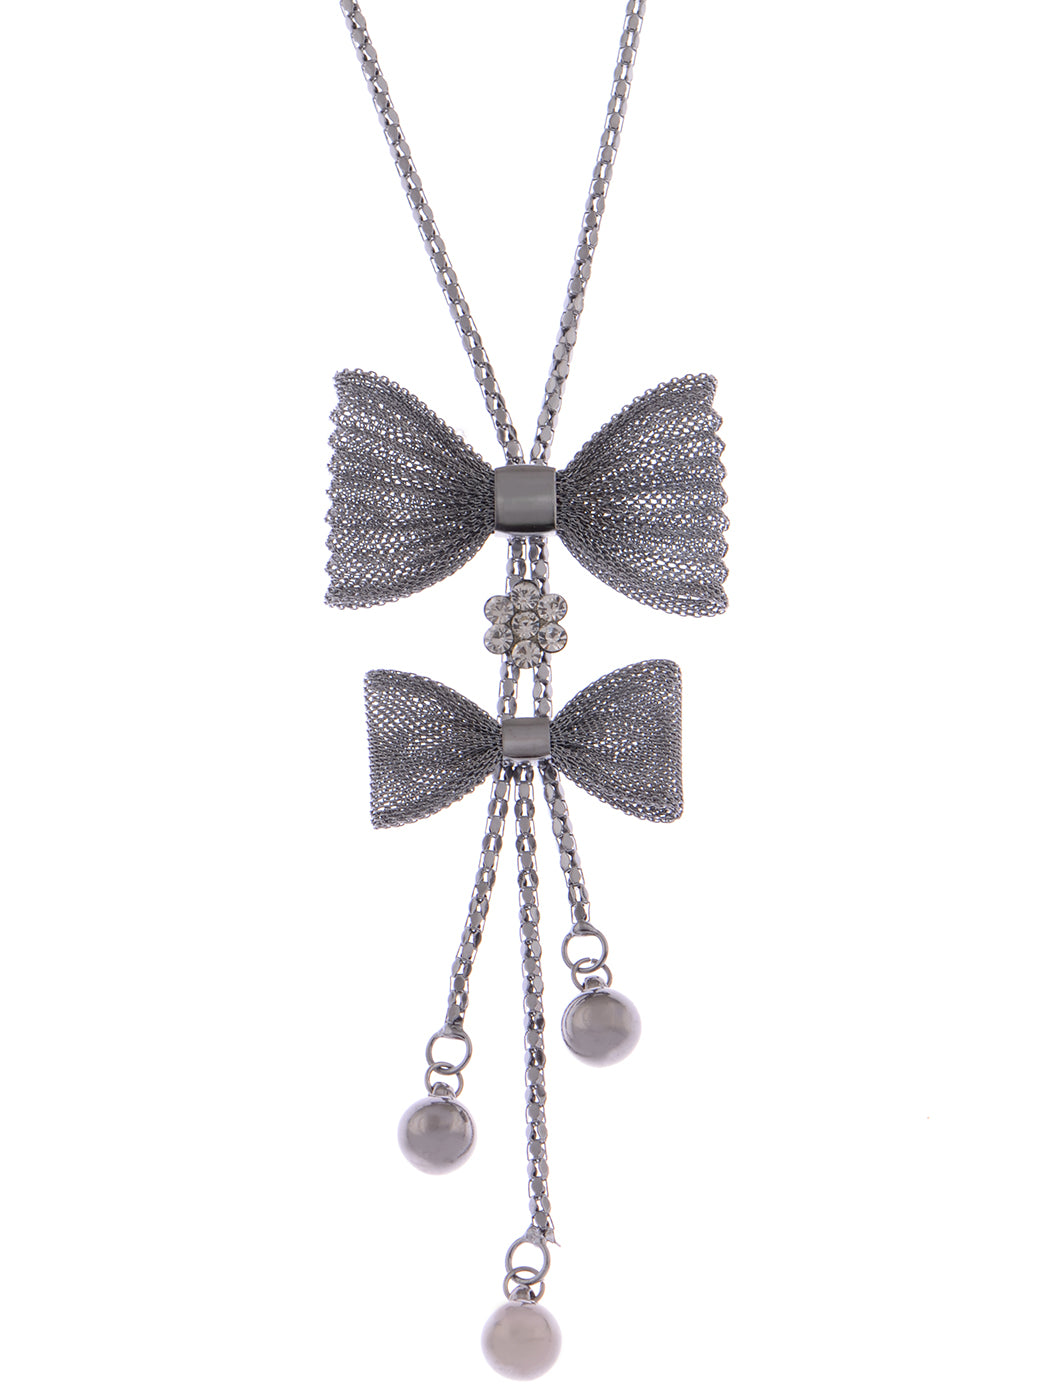 Antique Ribbon Present Gift Bow Dangling Necklace